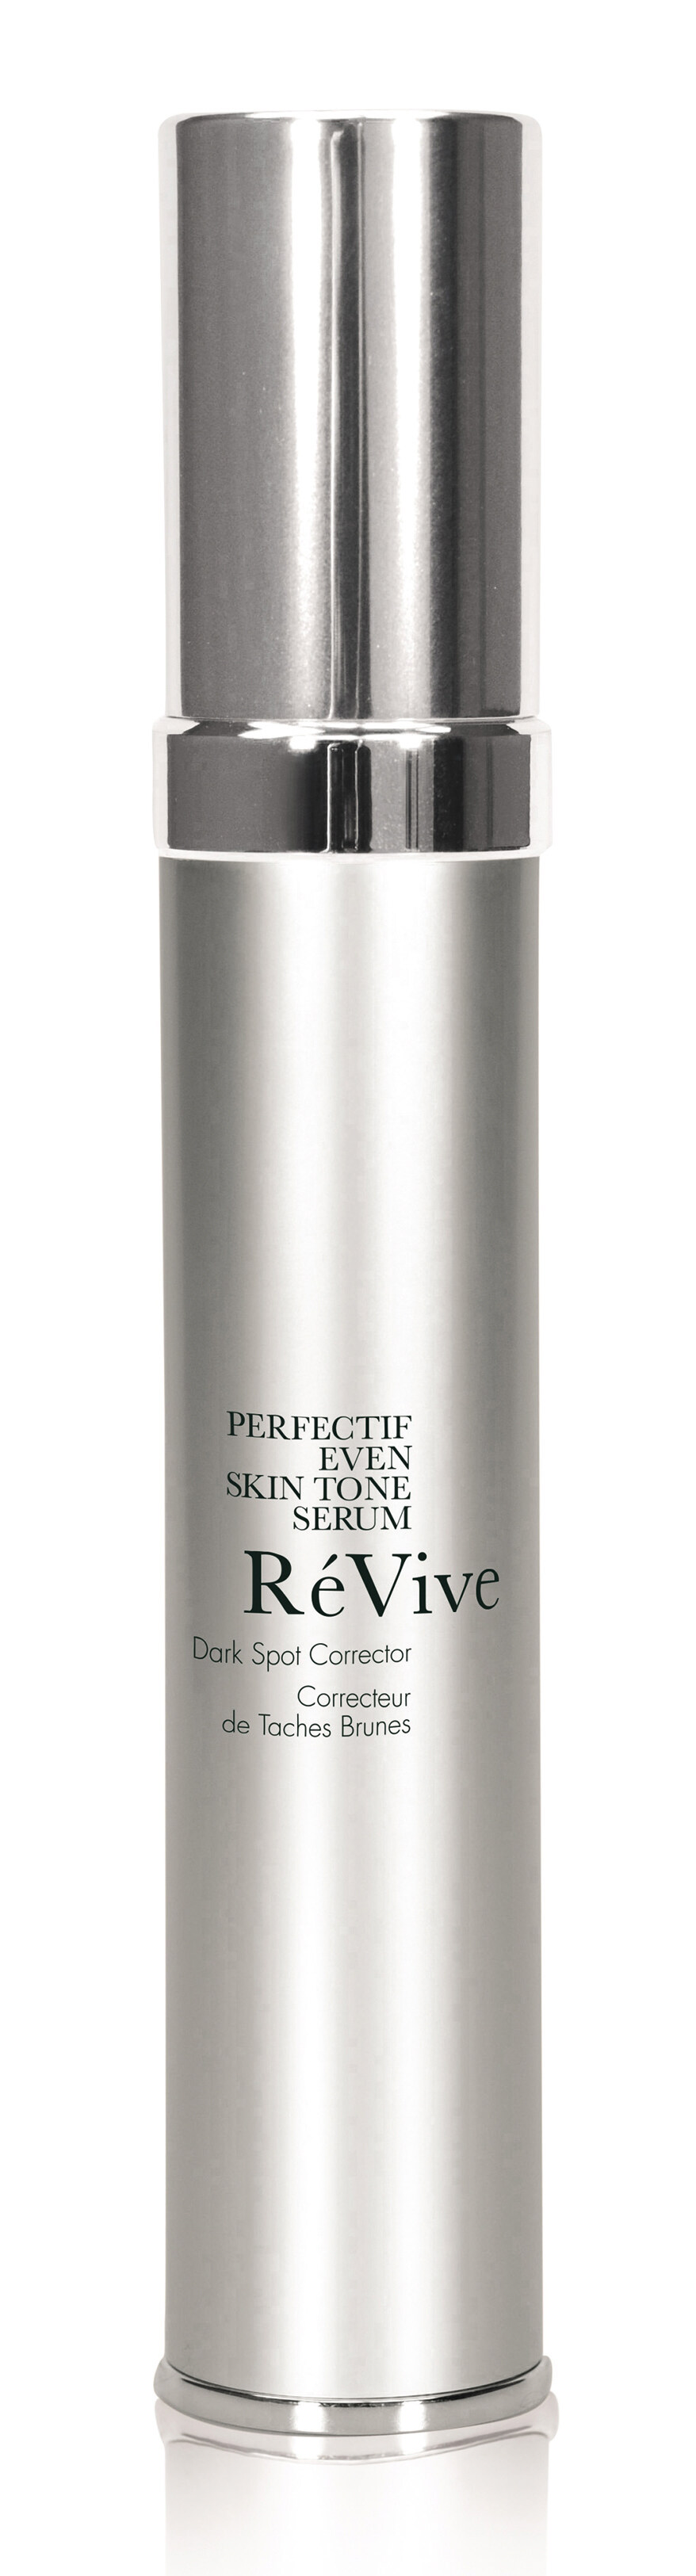 Revive Perfectif Even Skin Tone Serum($3,100)